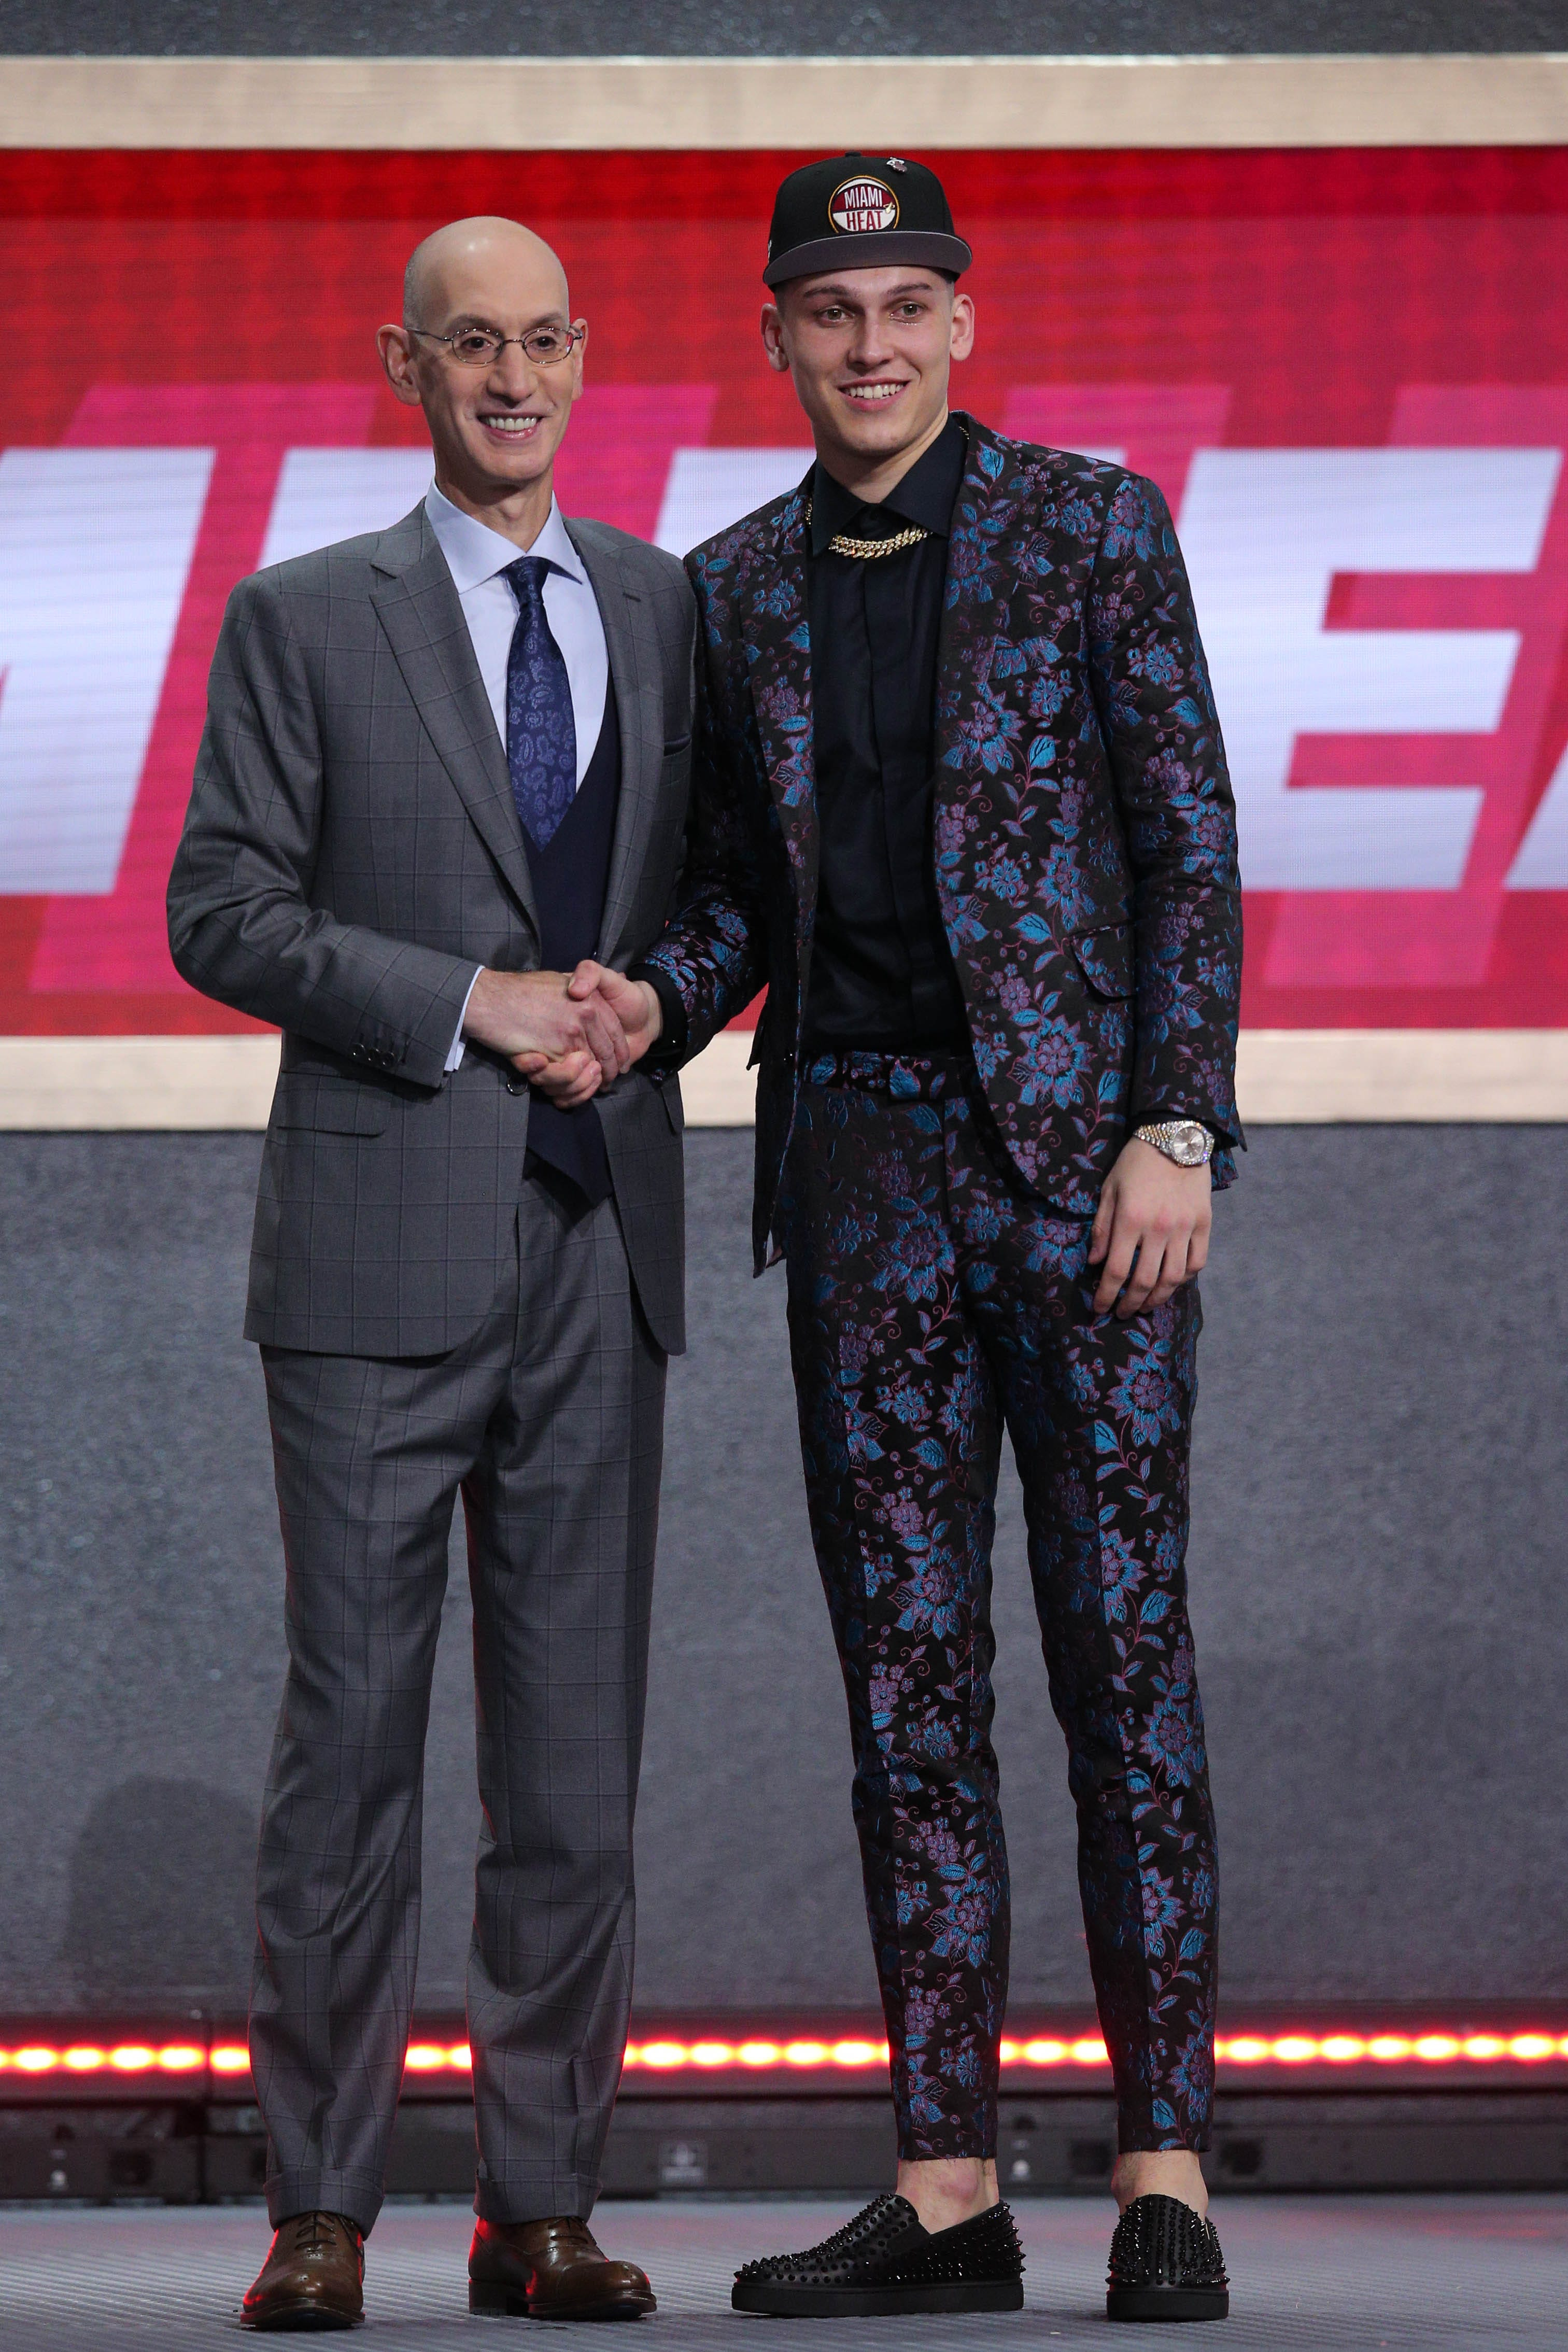 Nba Draft Best And Worst Dressed